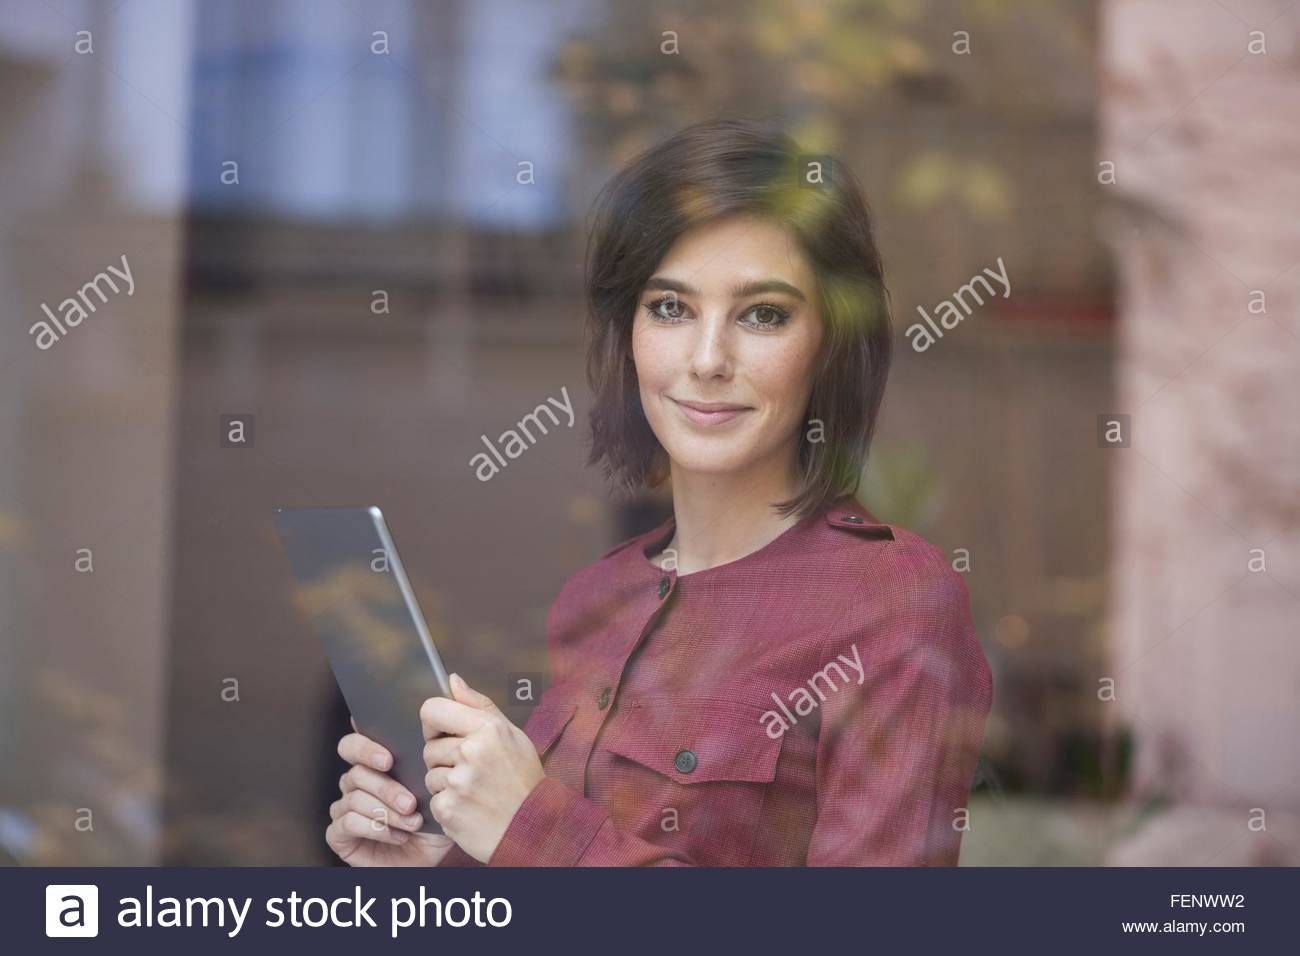 Portrait of businesswoman holding digital tablet looking through window - Stock Image